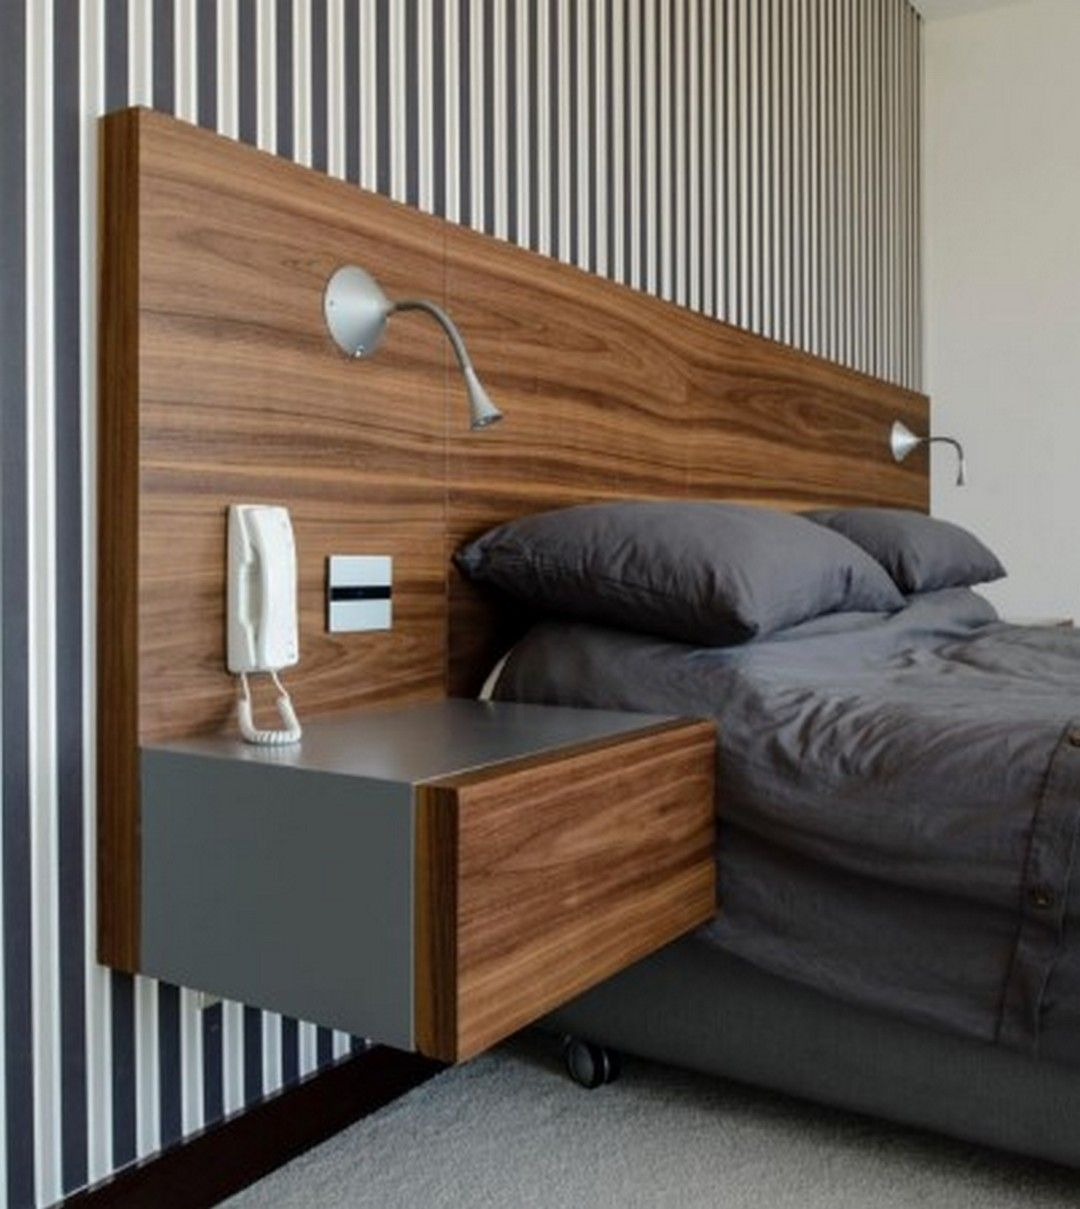 13+ When is the best time to buy bedroom furniture ideas in 2021